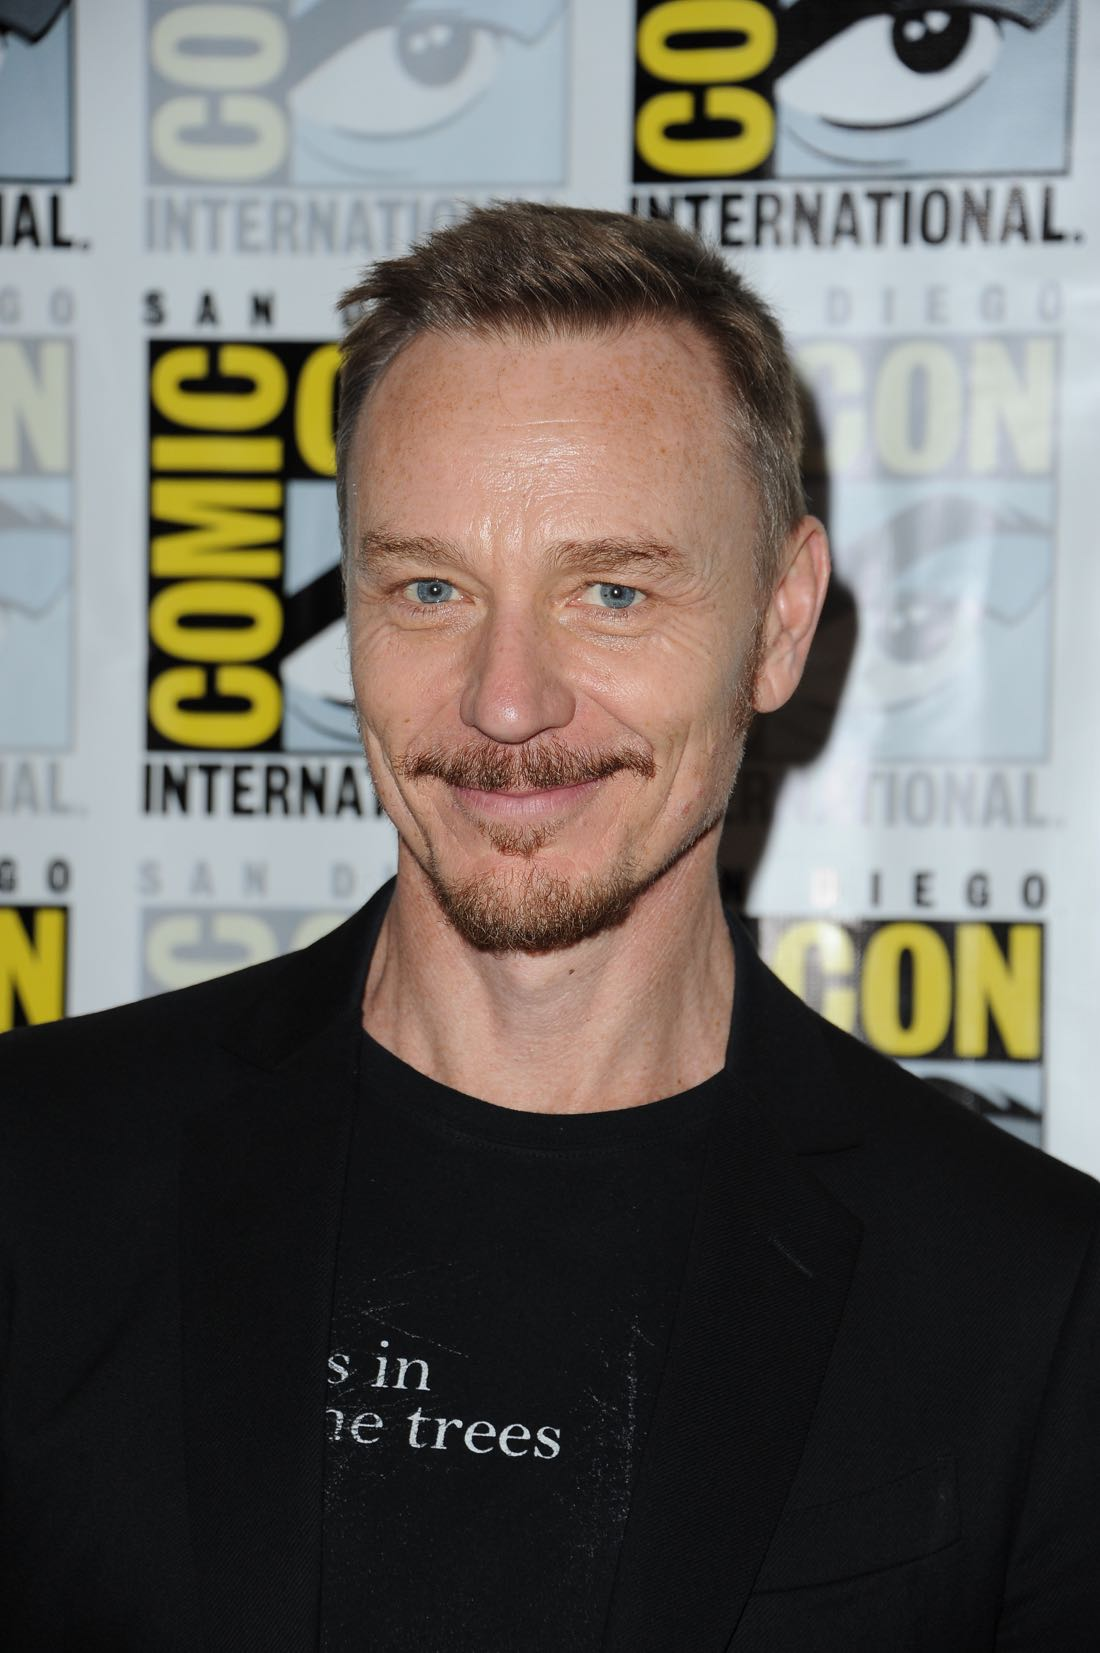 FOX FANFARE AT SAN DIEGO COMIC-CON © 2016: THE EXORCIST cast member Ben Daniels during THE EXORCIST press room on Friday, July 22 at the FOX FANFARE AT SAN DIEGO COMIC-CON © 2016. CR: Scott Kirkland/FOX © 2016 FOX BROADCASTING